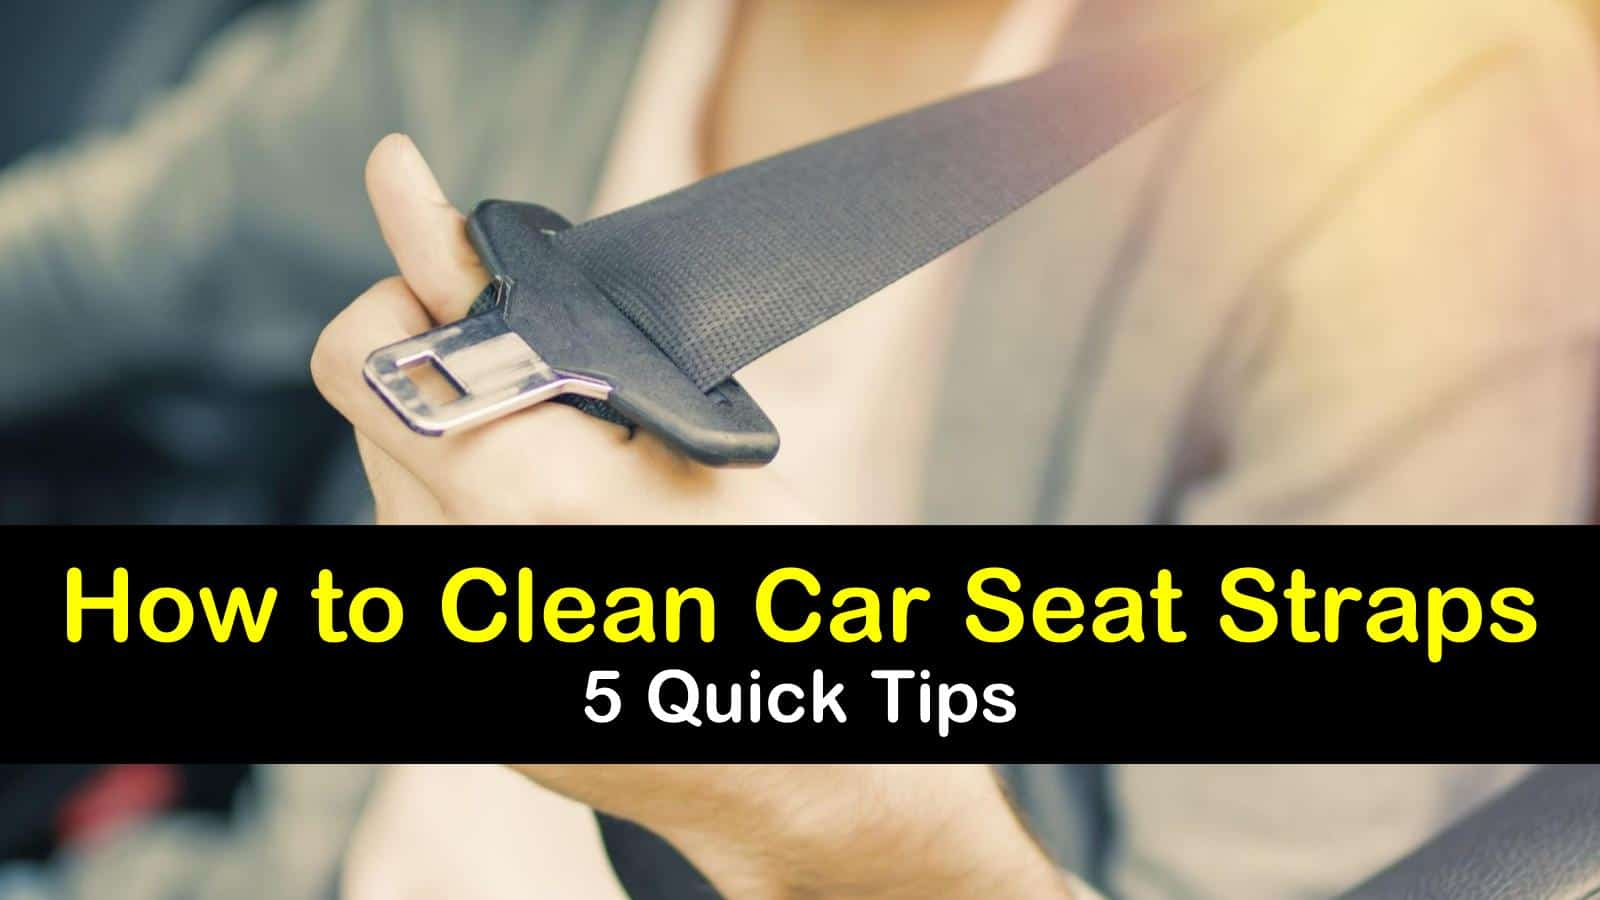 how to clean car seat straps titleimg1